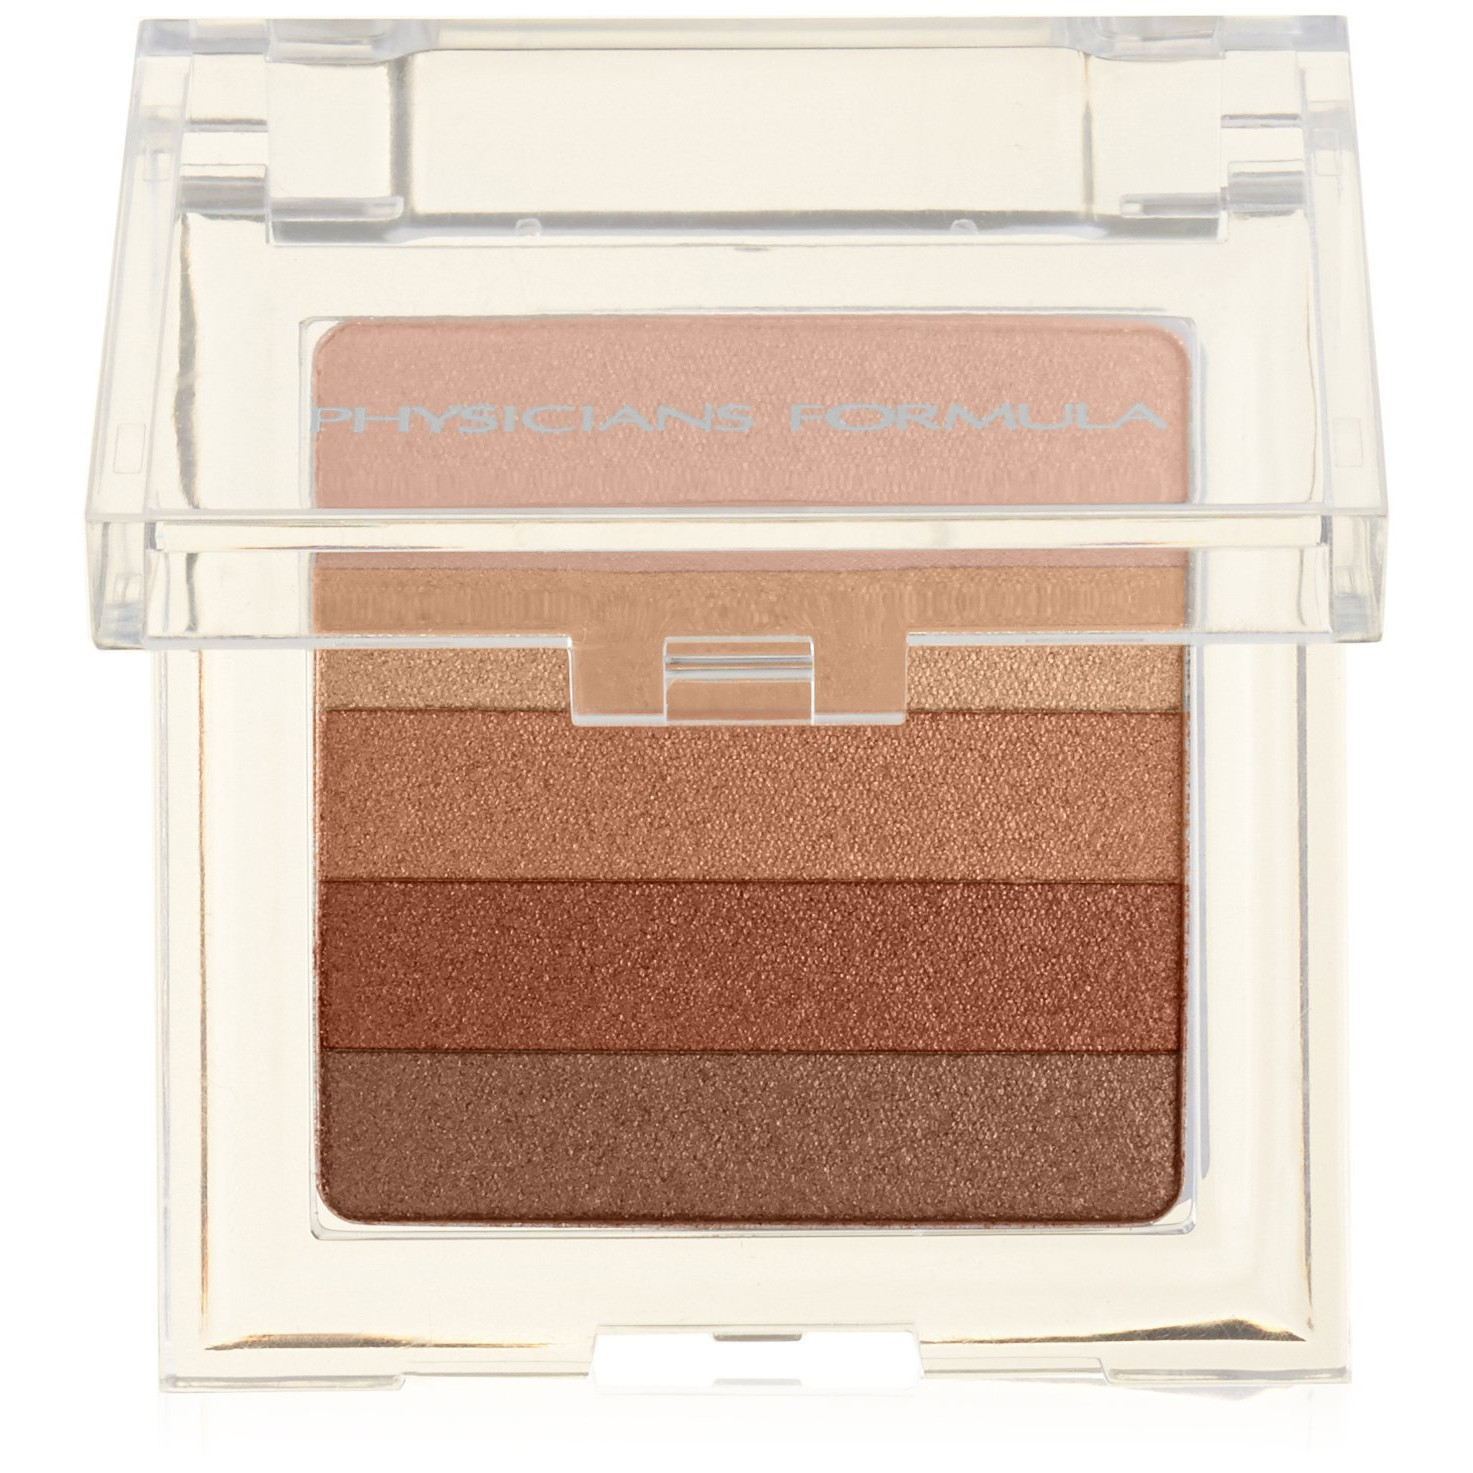 Physicians Formula Shimmer Strips Custom Bronzer, Blush and Eye Shadow, Waikiki Strip Peach Glow 2745